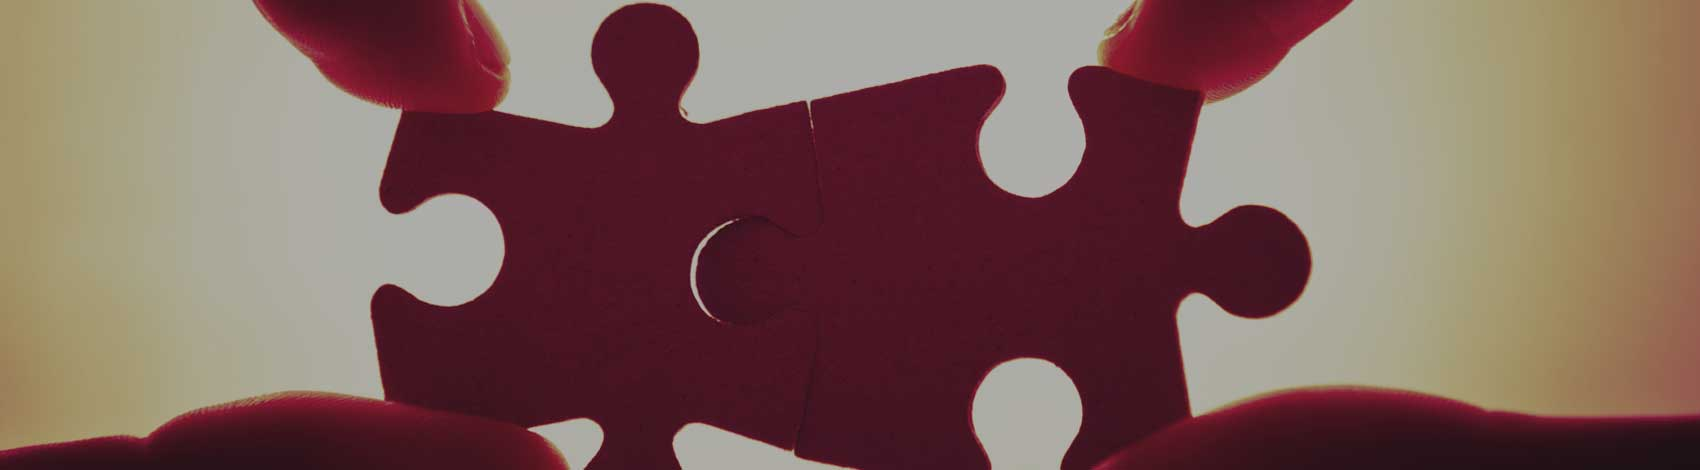 puzzle pieces - Brass Tacks Recovery - Intervention and Family Support Services